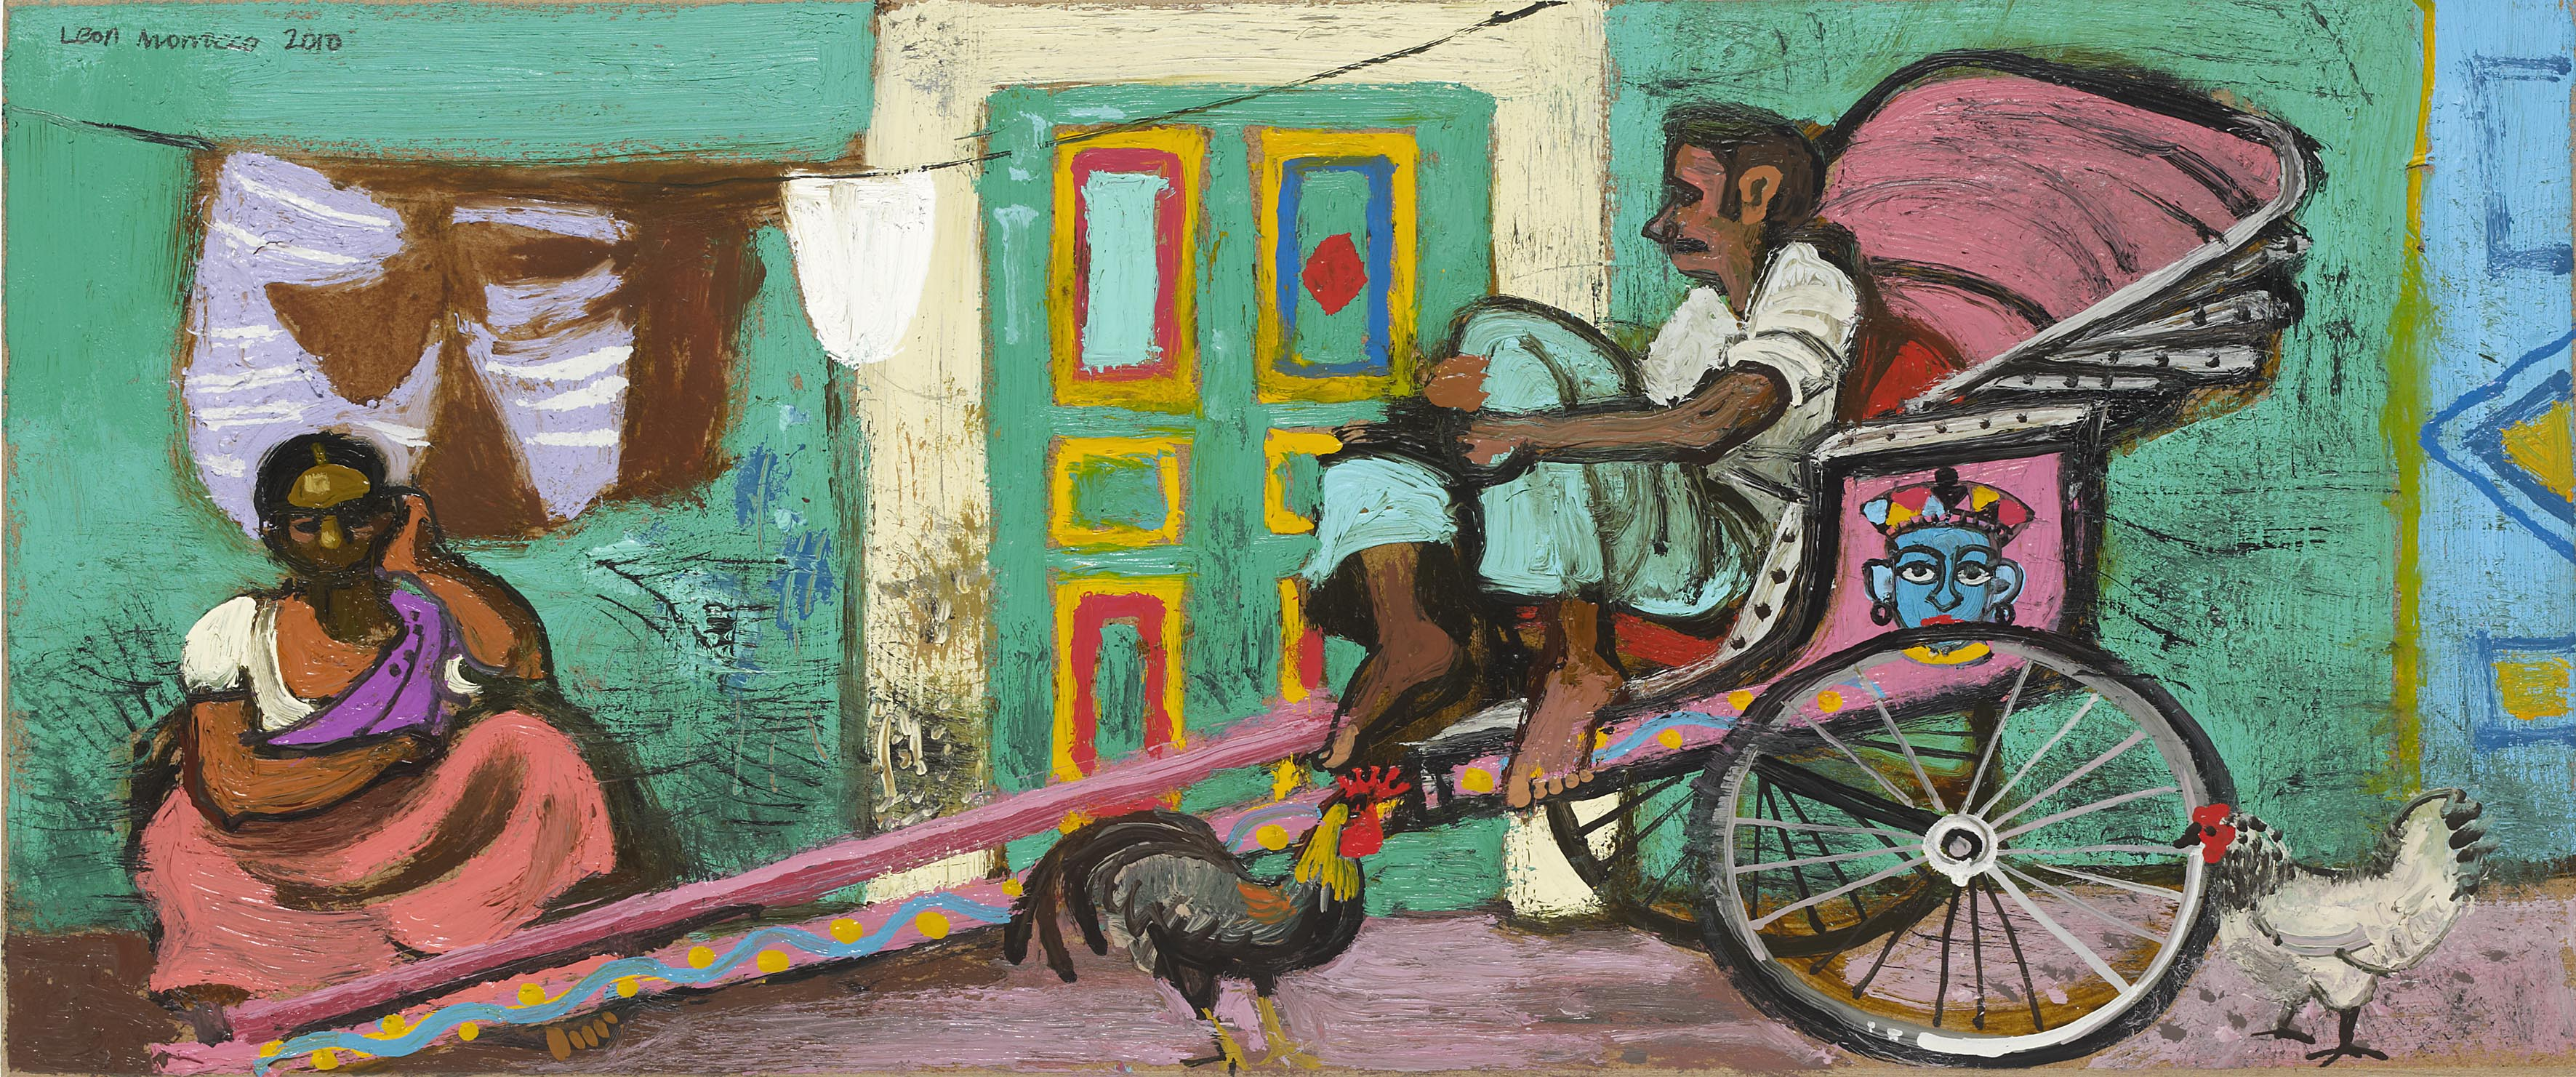 Leon Morrocco - Rickshaw Driver and his Wife, Kolkata – 2010